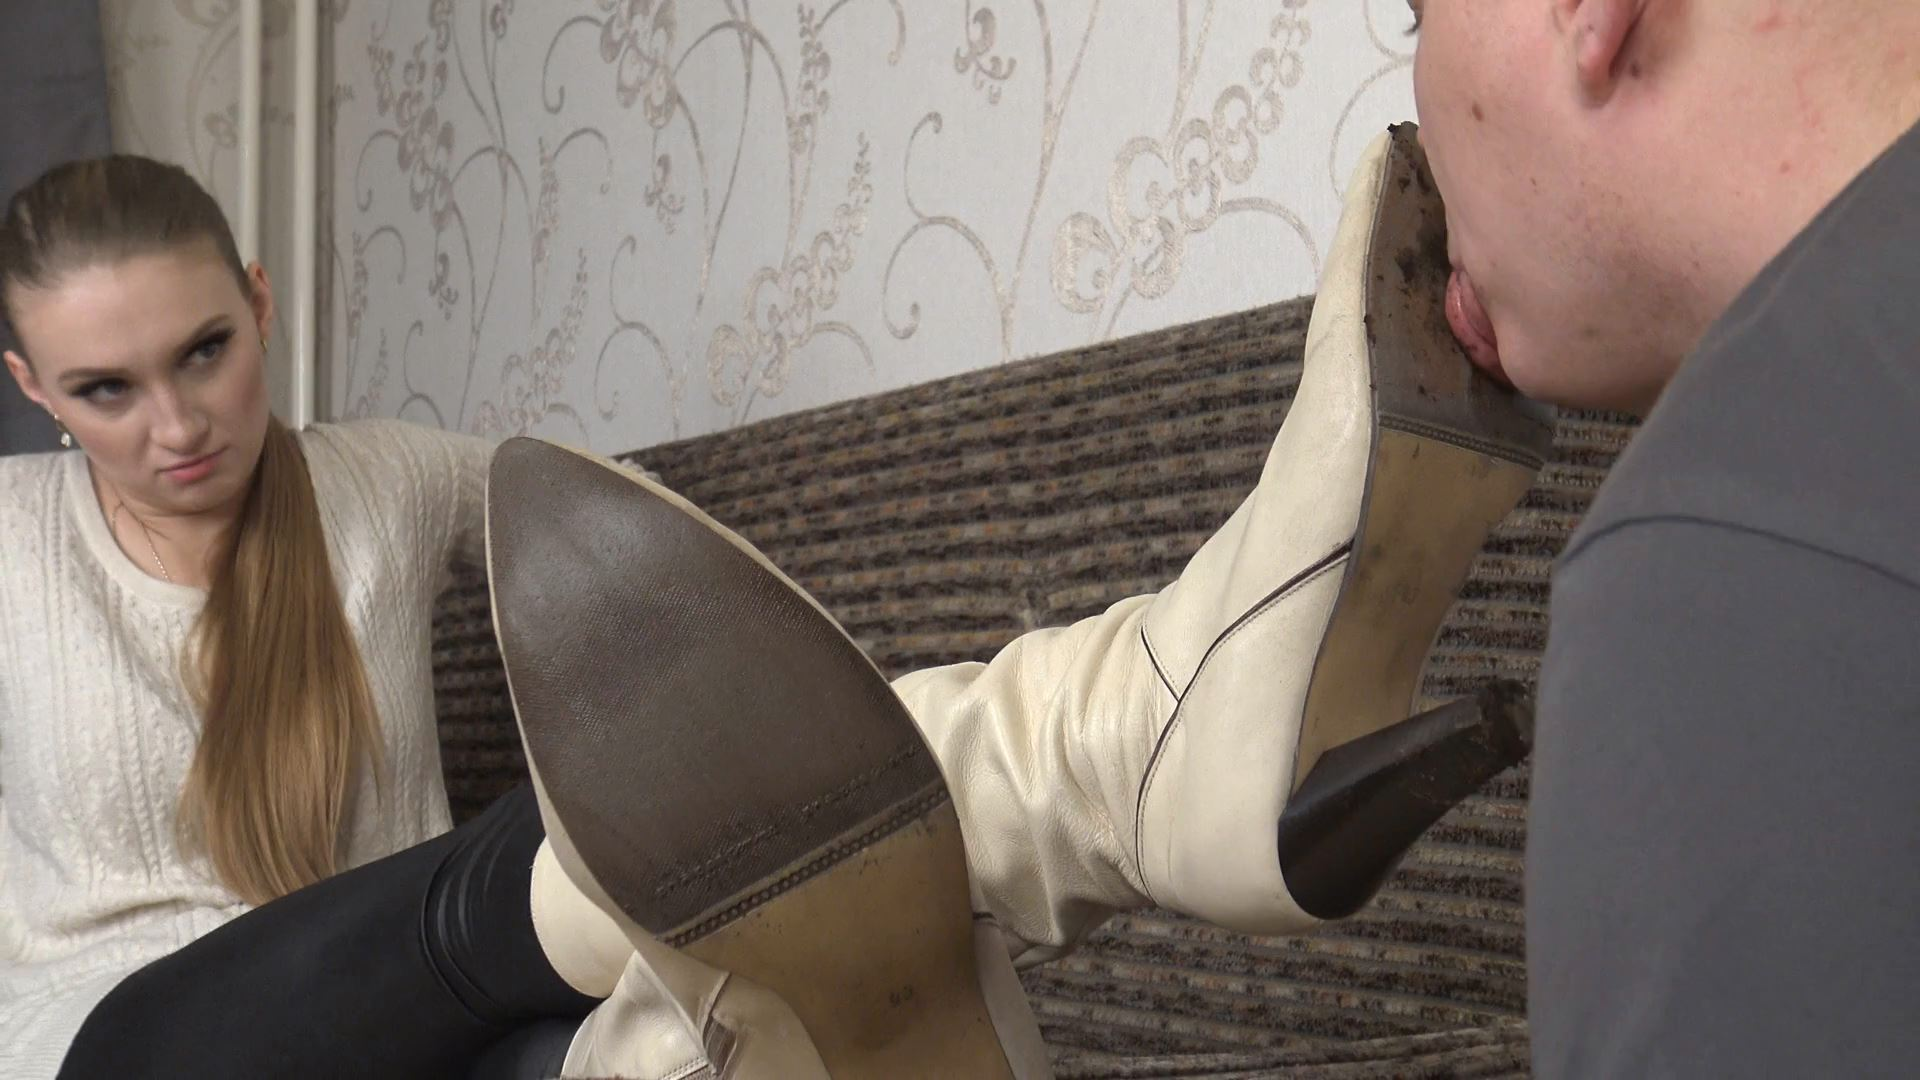 Violetta Dirty Boots Cleaning 4k - UNDER SWEET WEIGHT / CLIPS4SALE - FULL HD/1080p/MP4